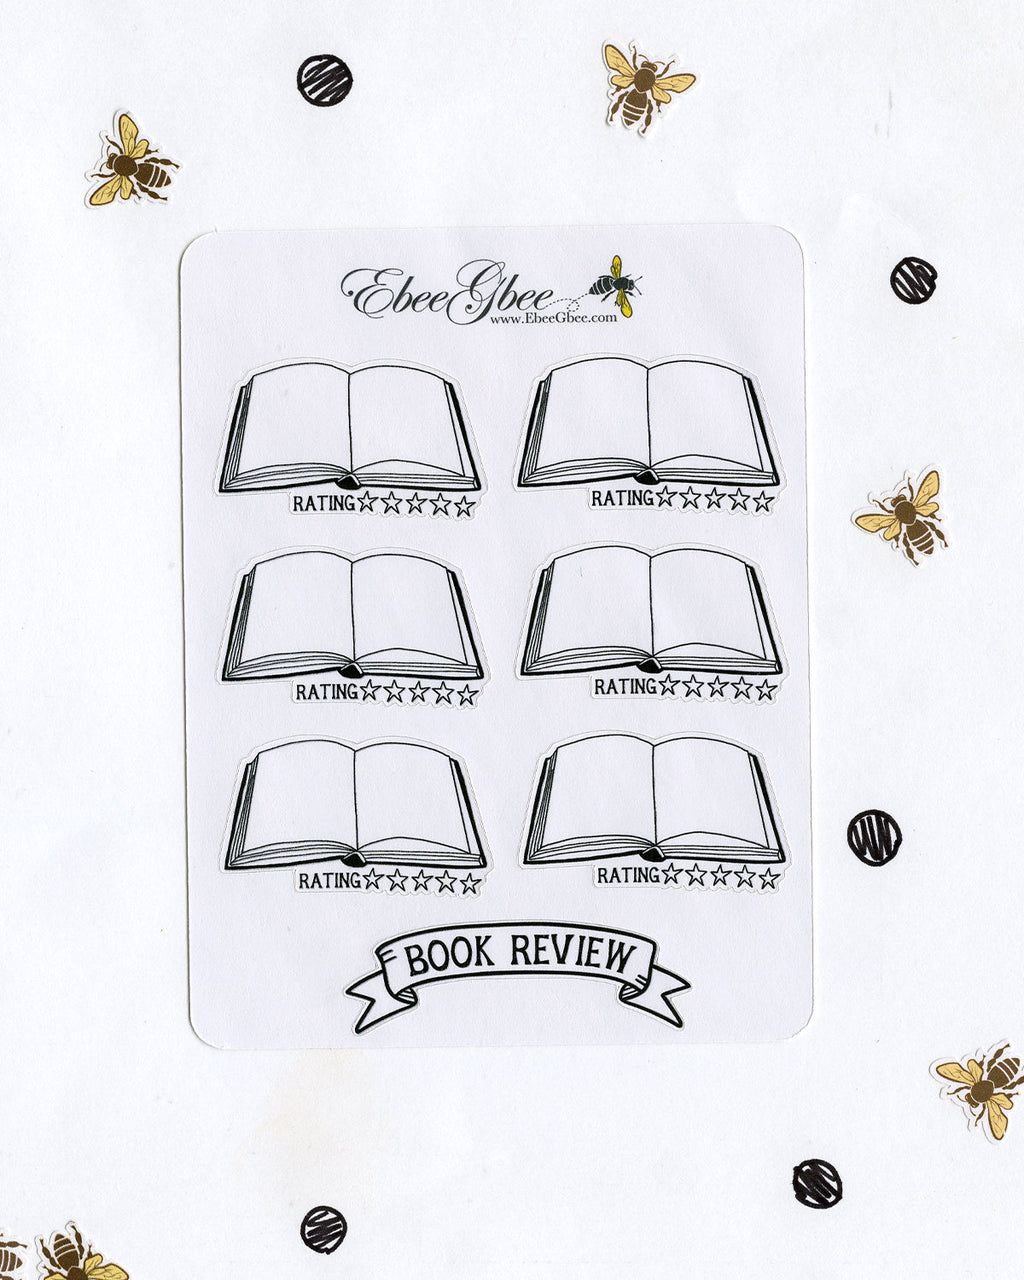 BOOK REVIEW Planner Stickers | Hand Drawn